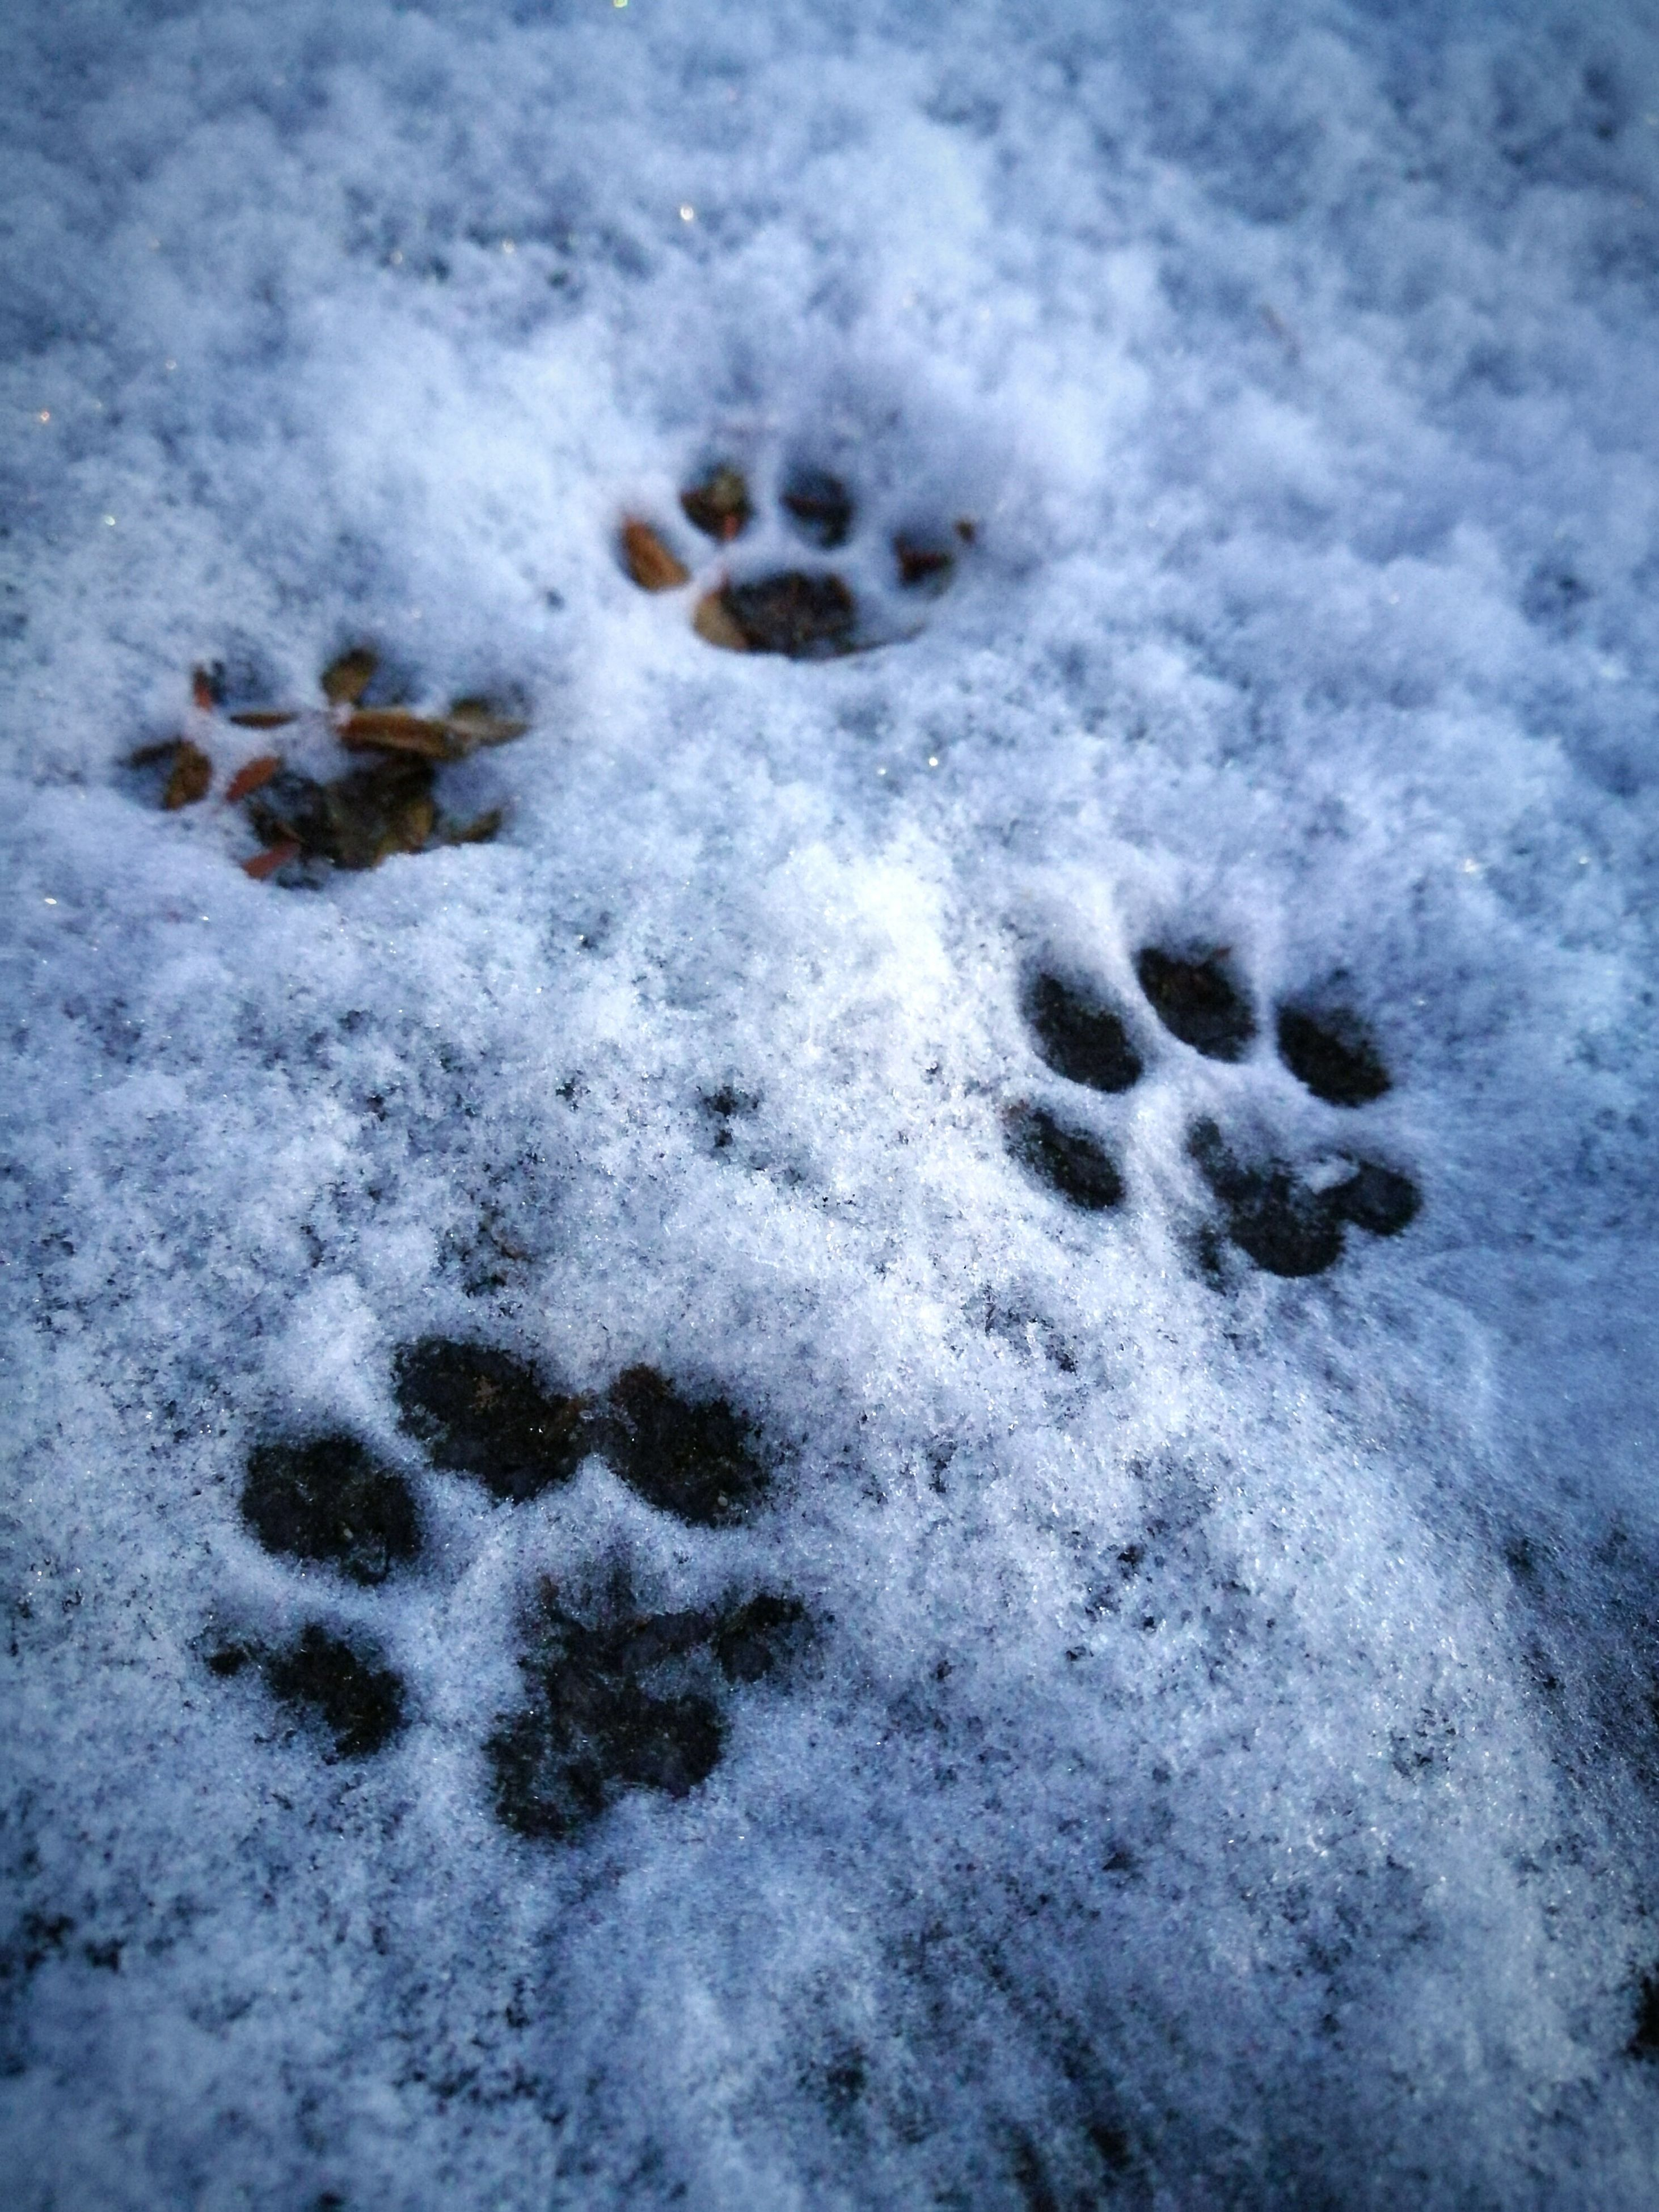 winter, snow, cold temperature, paw print, weather, nature, animal track, white color, high angle view, no people, day, outdoors, beauty in nature